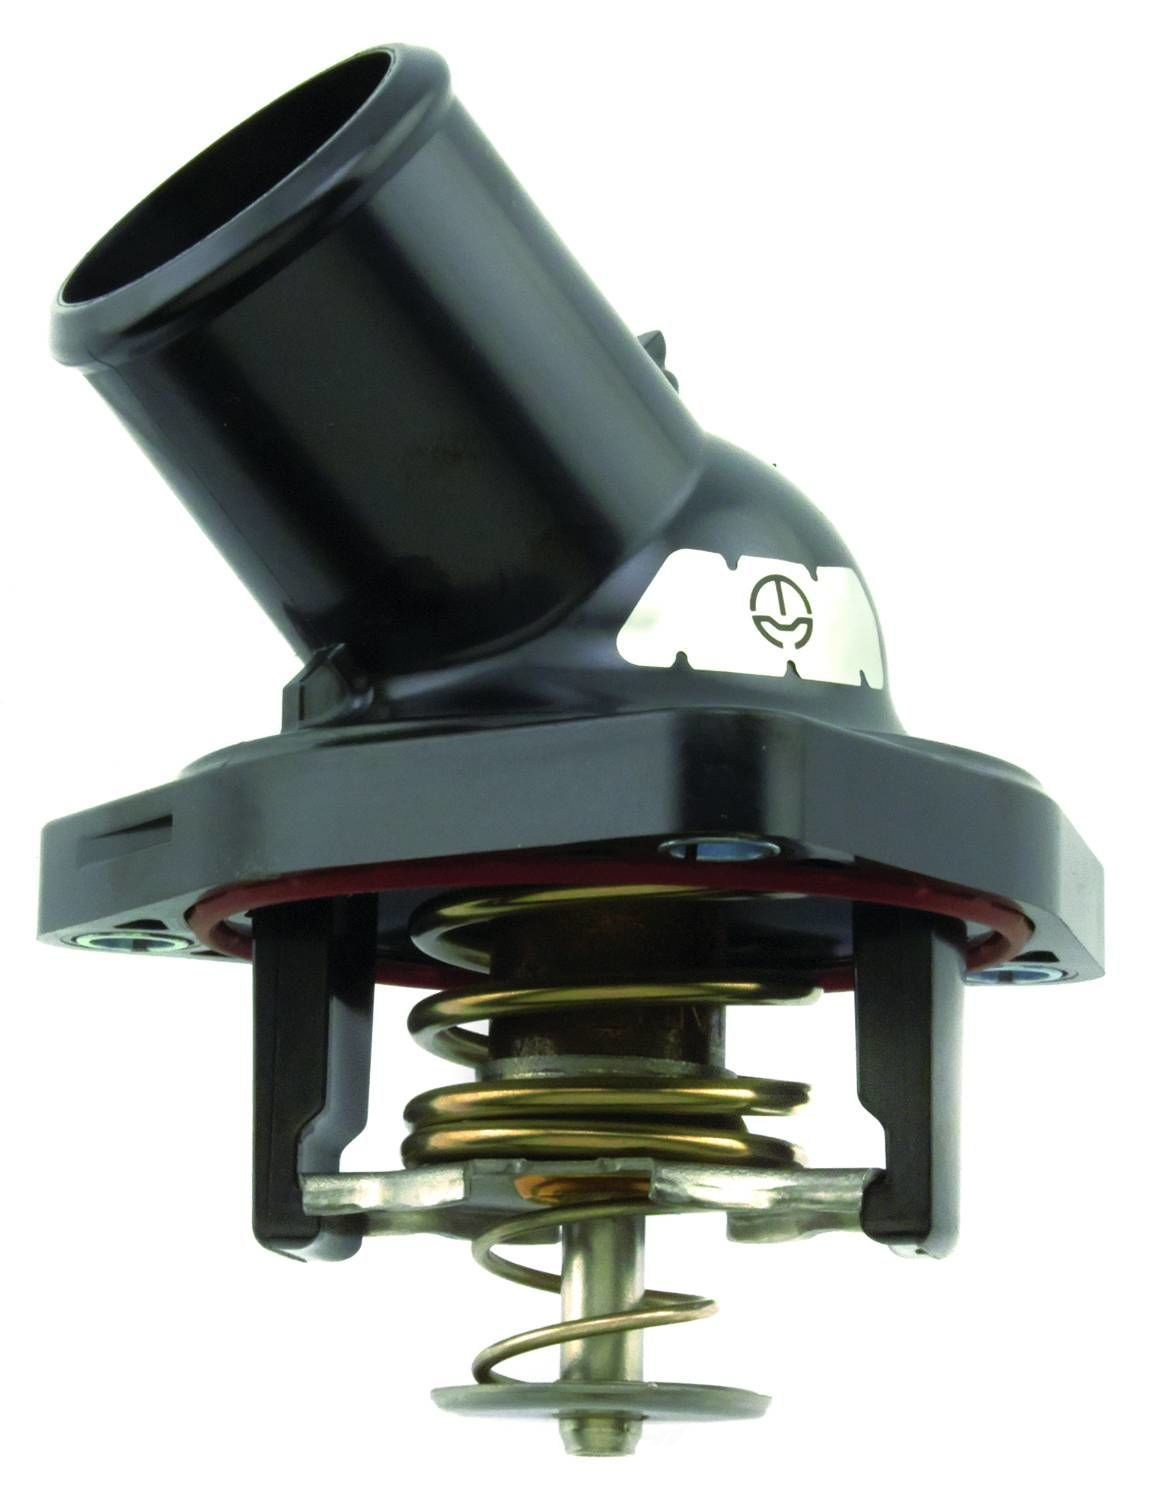 AISIN WORLD CORP. OF AMERICA - Engine Coolant Thermostat - AIS THT-005